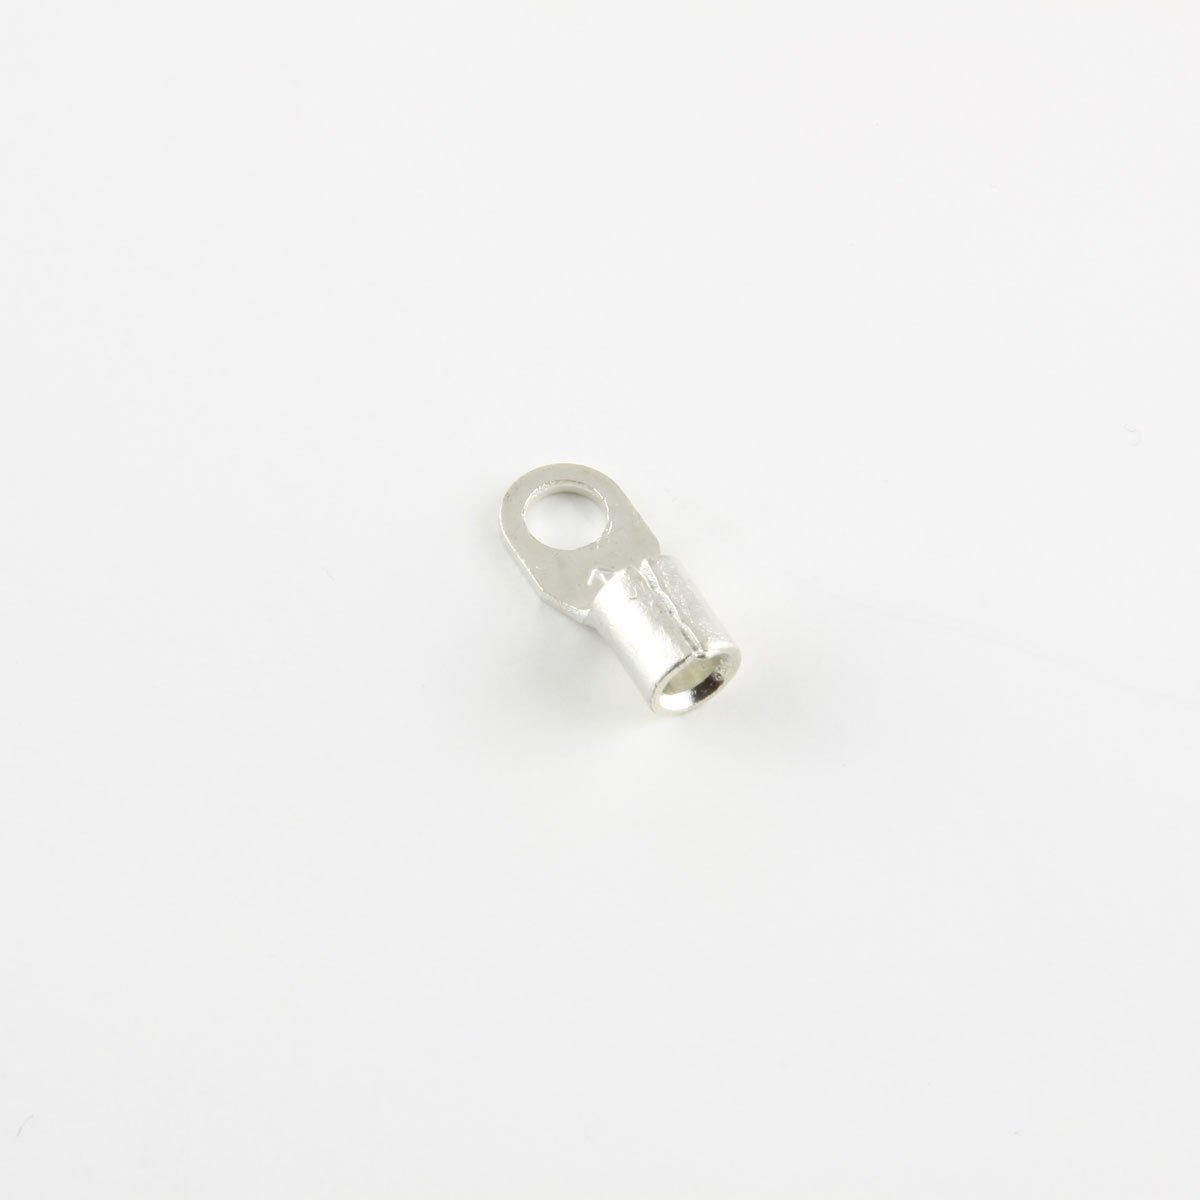 12-10 Ga. Narrow-Profile Ring Terminals, #8 Stud - (pack of 50)